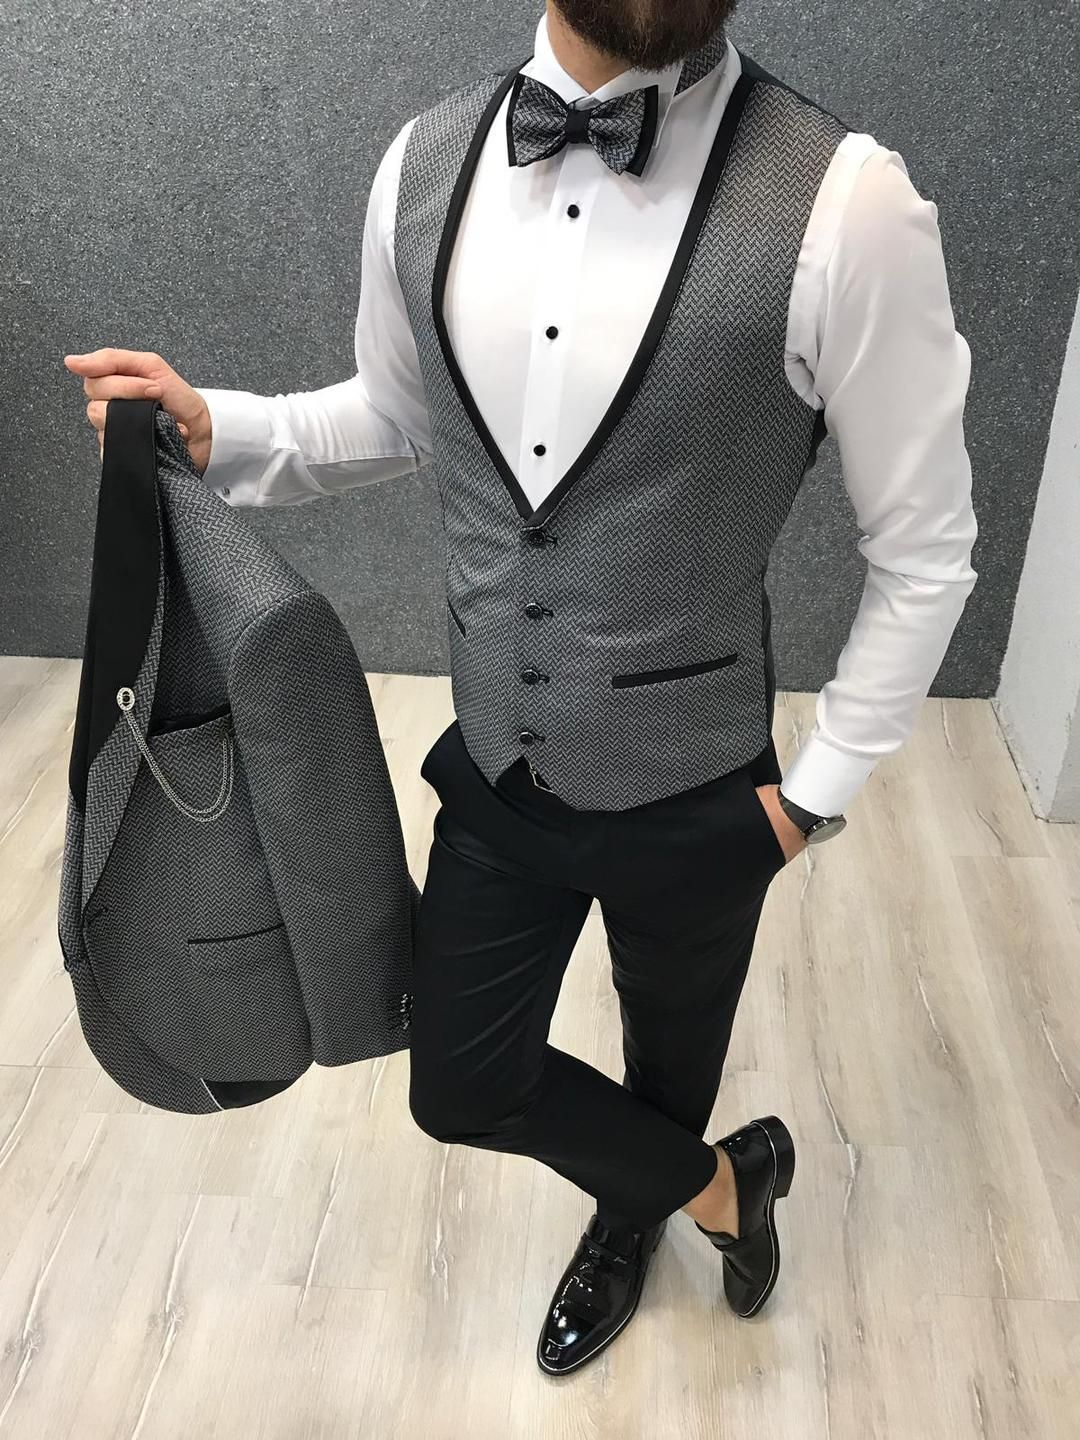 Ferrar Shawl Collared Grey Suit (Wedding Collection) is part of Grey suit wedding -  Groom CollectionsColor code  Grey Size  464850525456   Suit material 70% Viscose, 30% Polyester   Machine Washable  No   Fitting  Regular Slim Fit Set Jacket, Vest & Pants Remarks Dry Cleaning Only